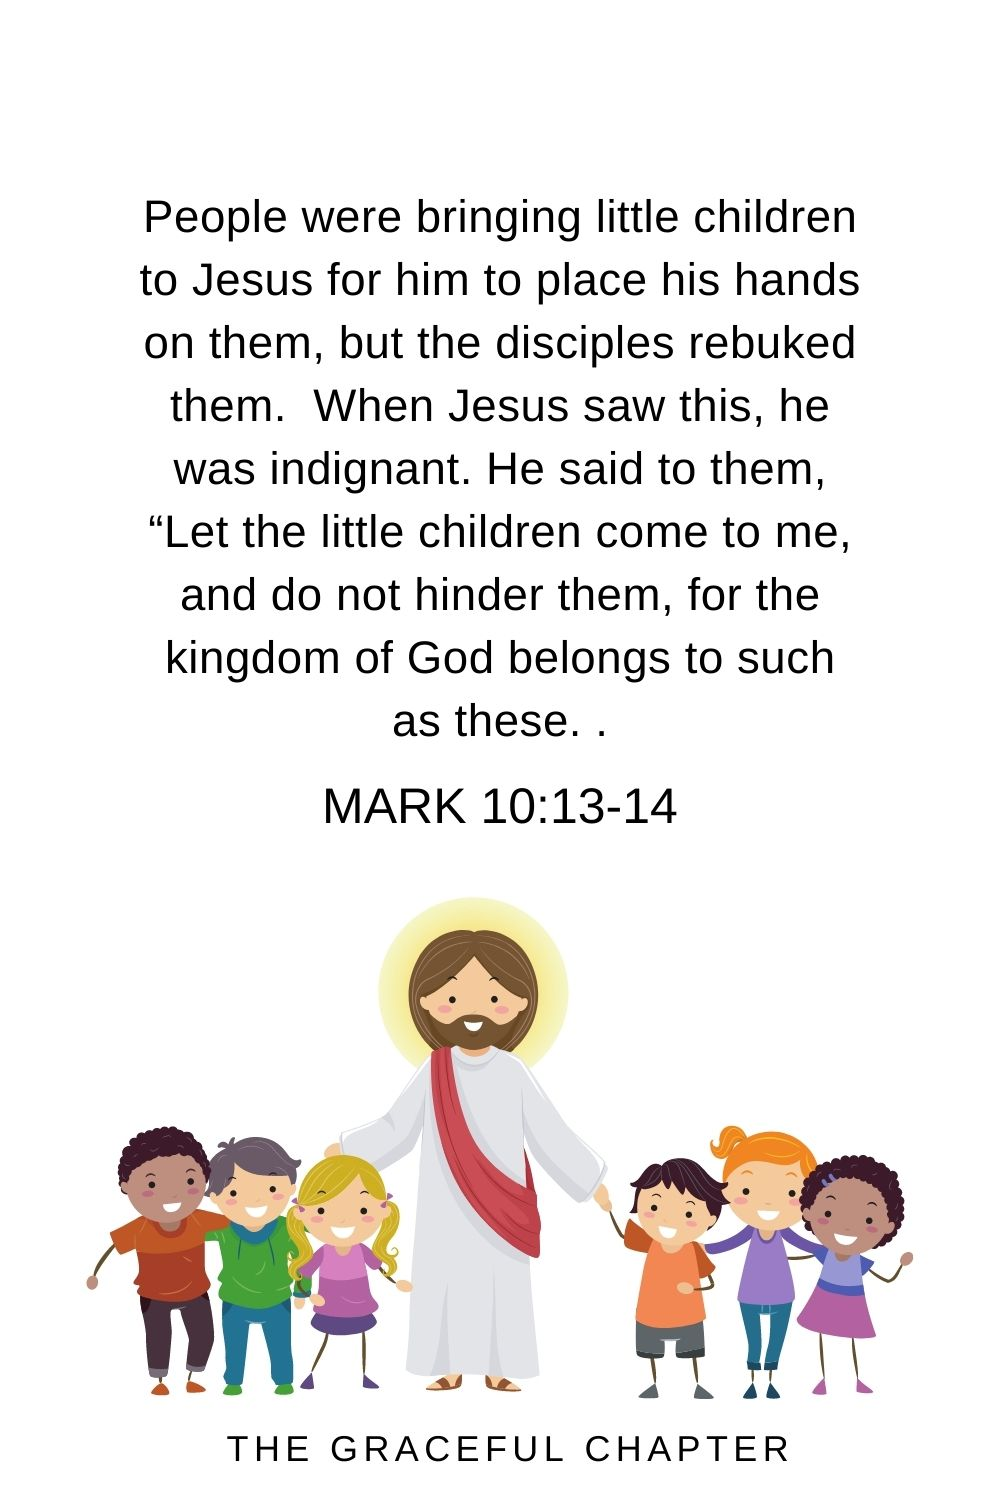 """People were bringing little children to Jesus for him to place his hands on them, but the disciples rebuked them. When Jesus saw this, he was indignant. He said to them, """"Let the little children come to me, and do not hinder them, for the kingdom of God belongs to such as these.  Mark 10:13-14"""